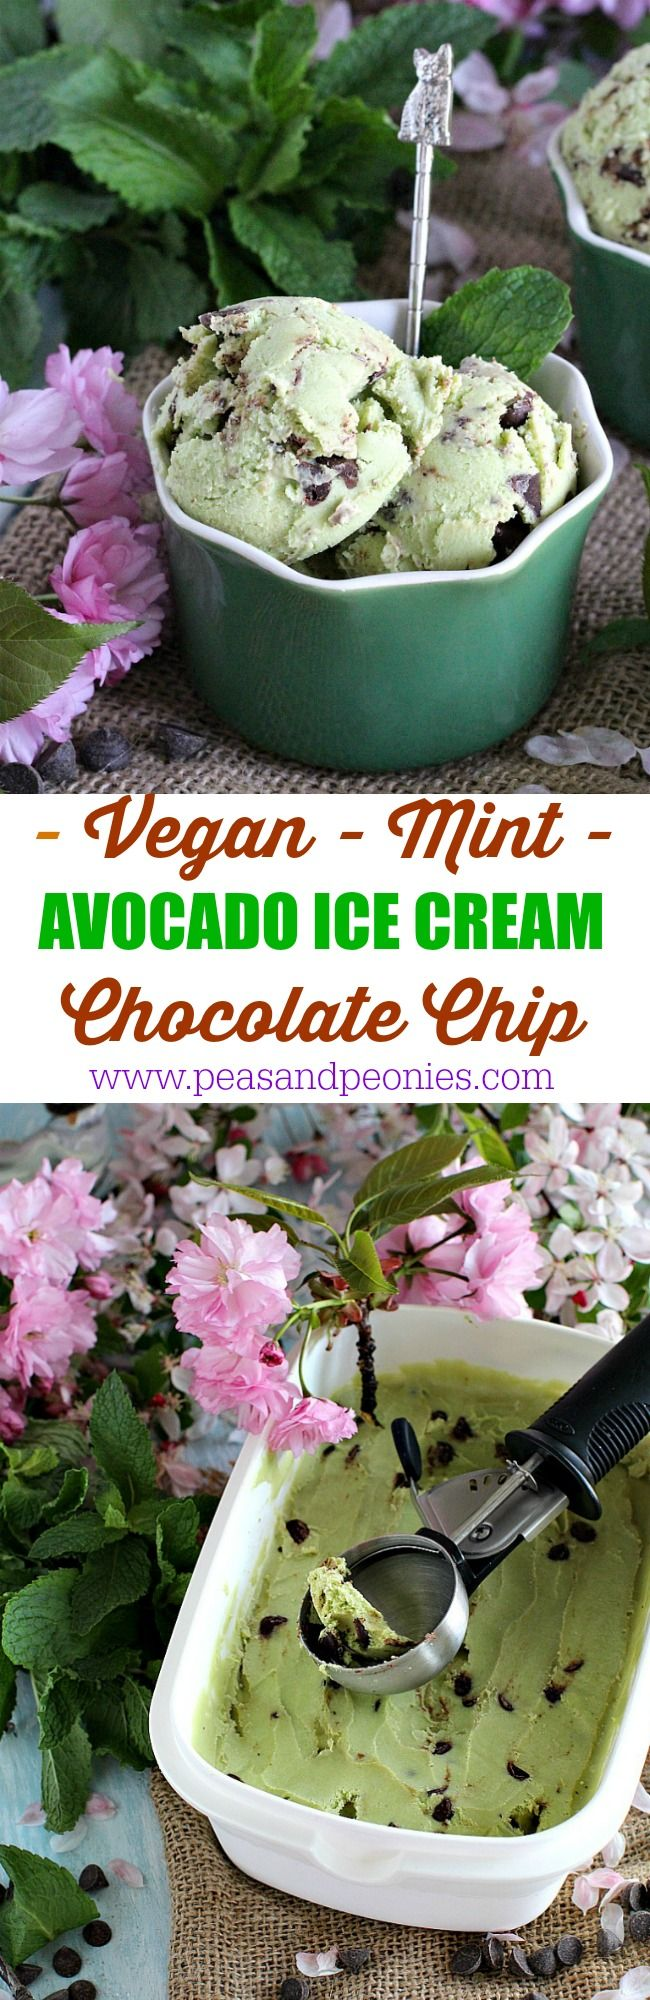 Vegan Mint Chocolate Chip Avocado Ice Cream has only 5 ingredients and no ice cream machine is needed. It's creamy, refreshing and also healthier.